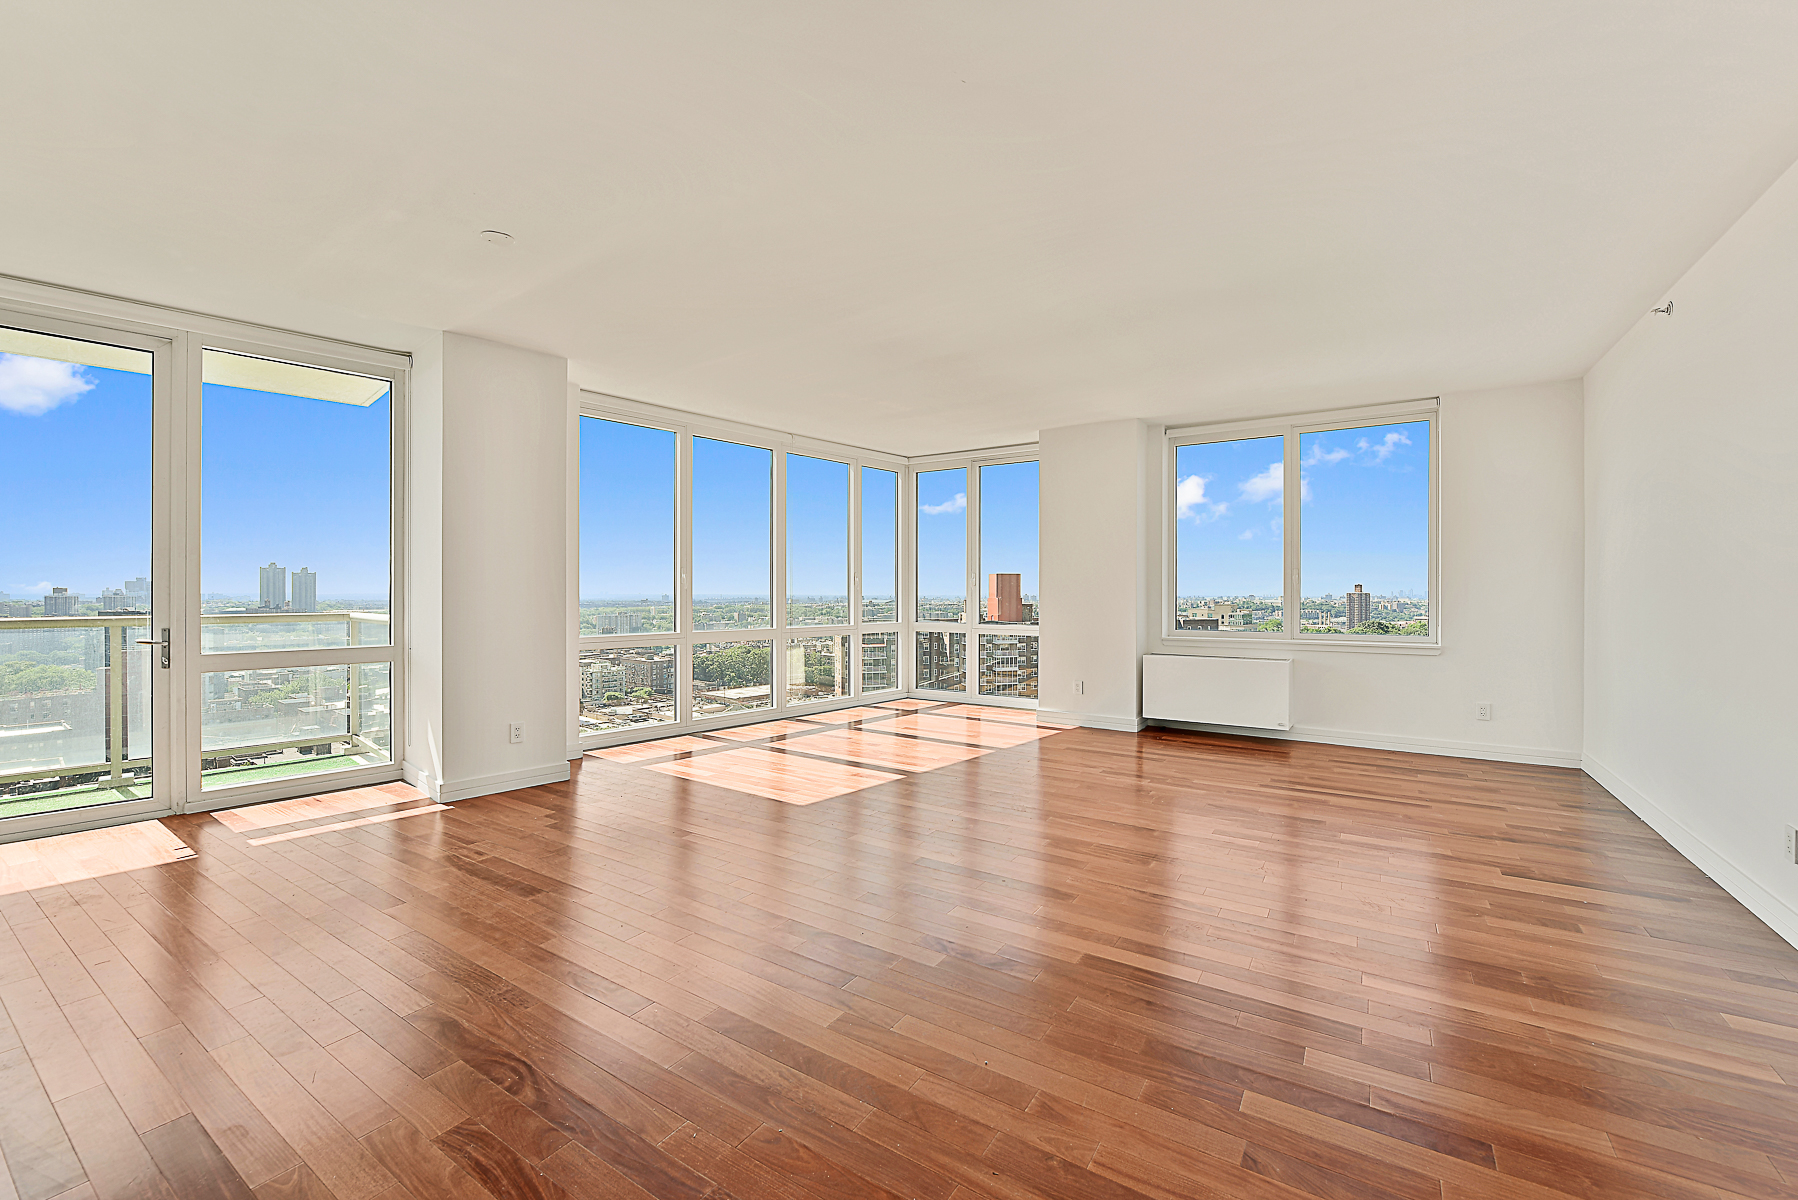 Condominium for Sale at Luxury New Condo Corner 2 Bedroom with Terrace 640 West 237 Street 16A Riverdale, New York, 10463 United States